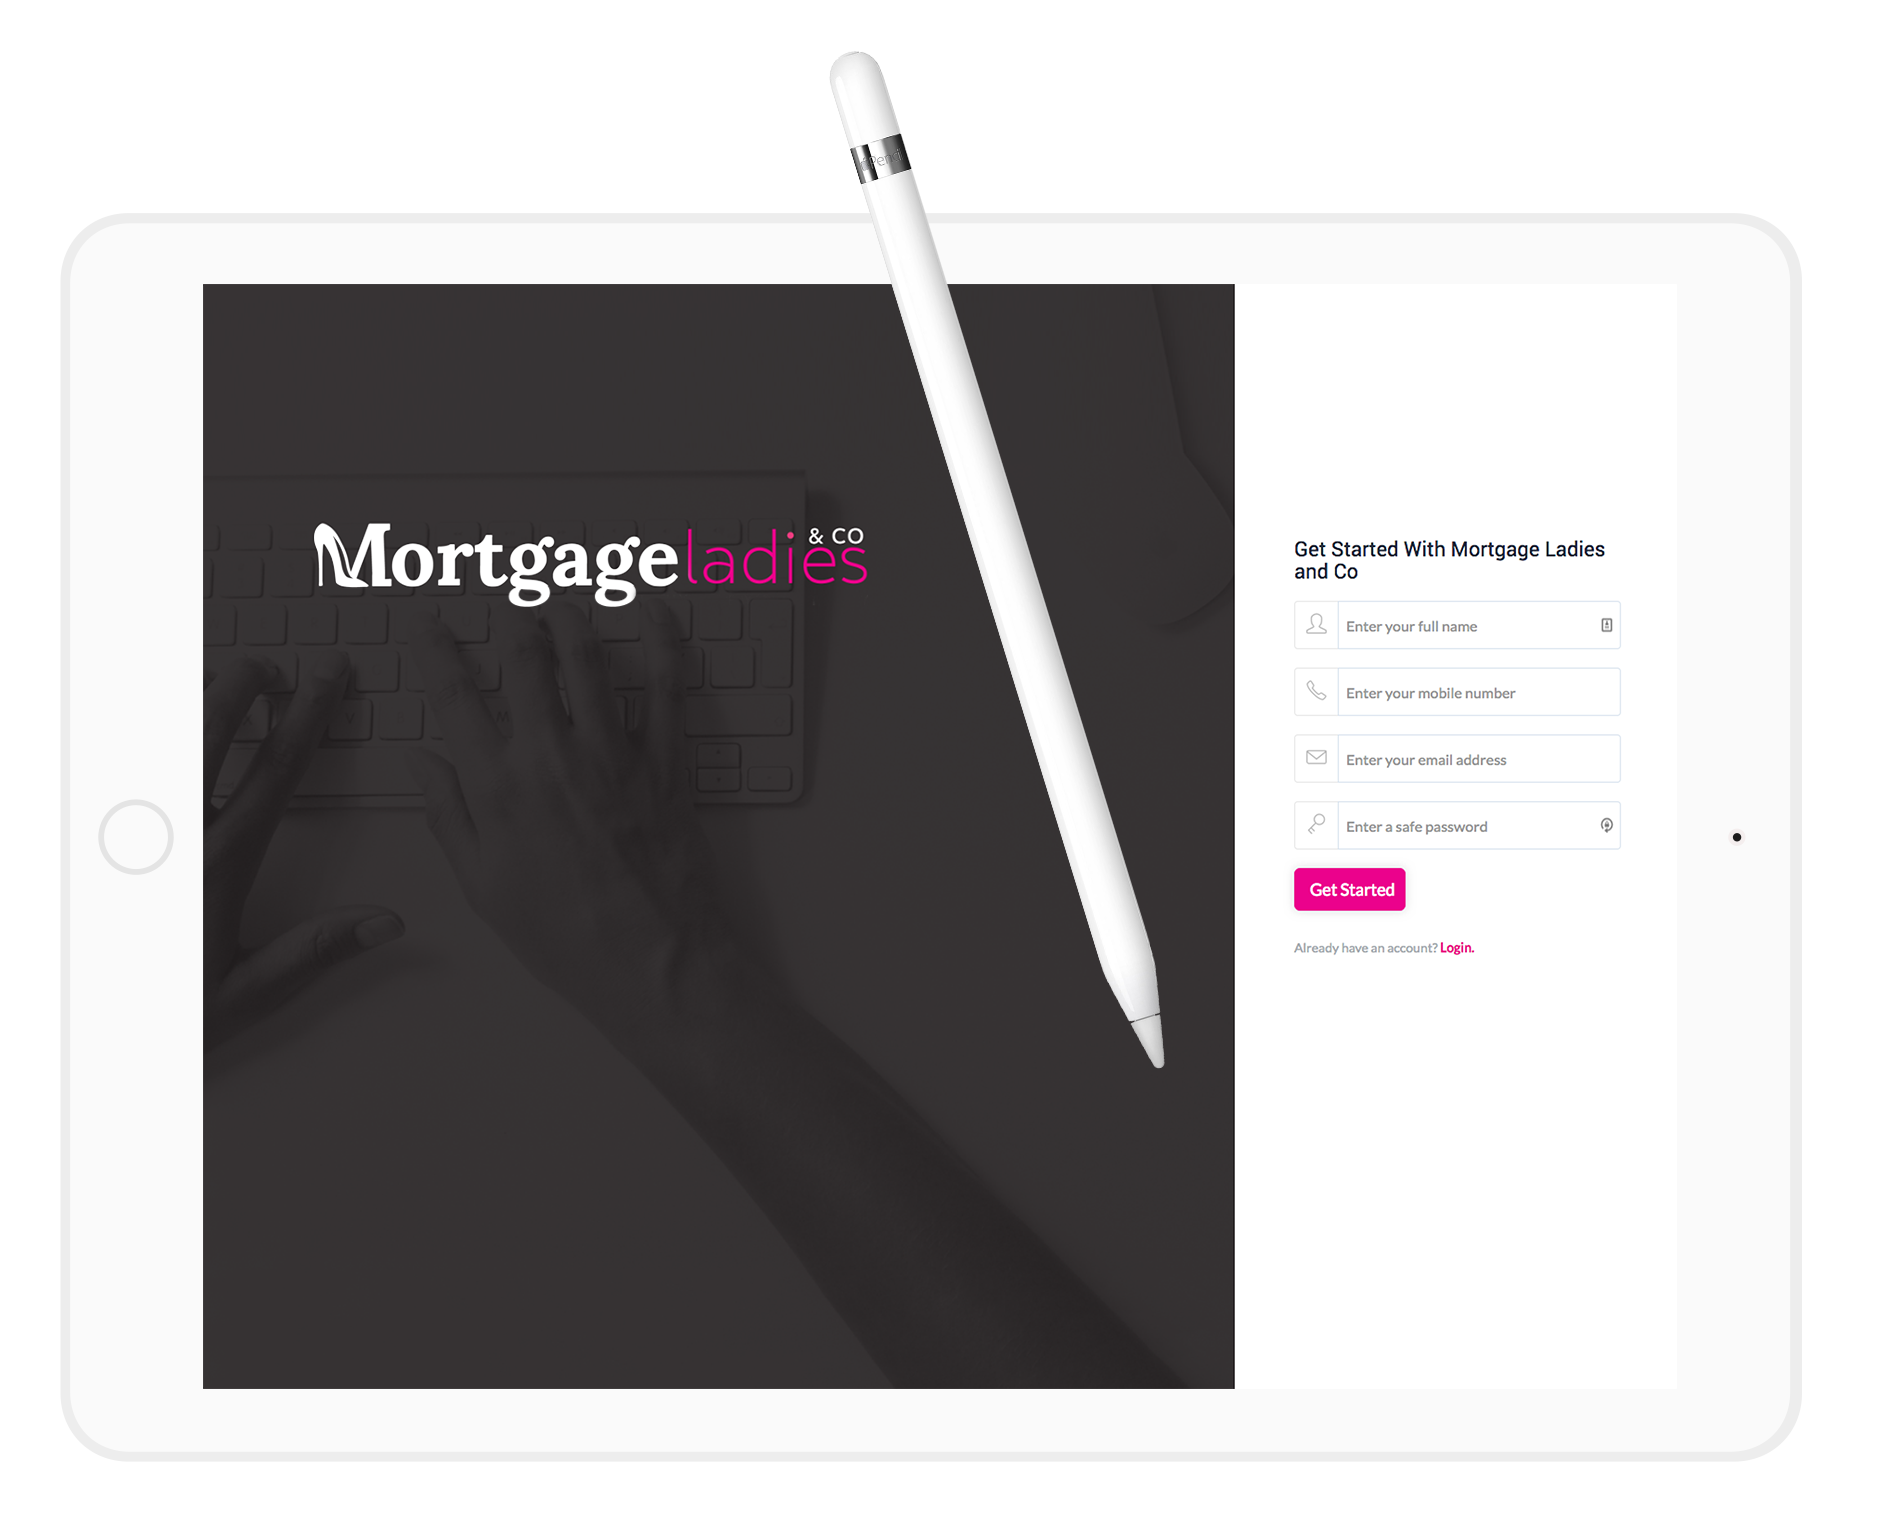 mortgage_ladies_and_co_start_application.png